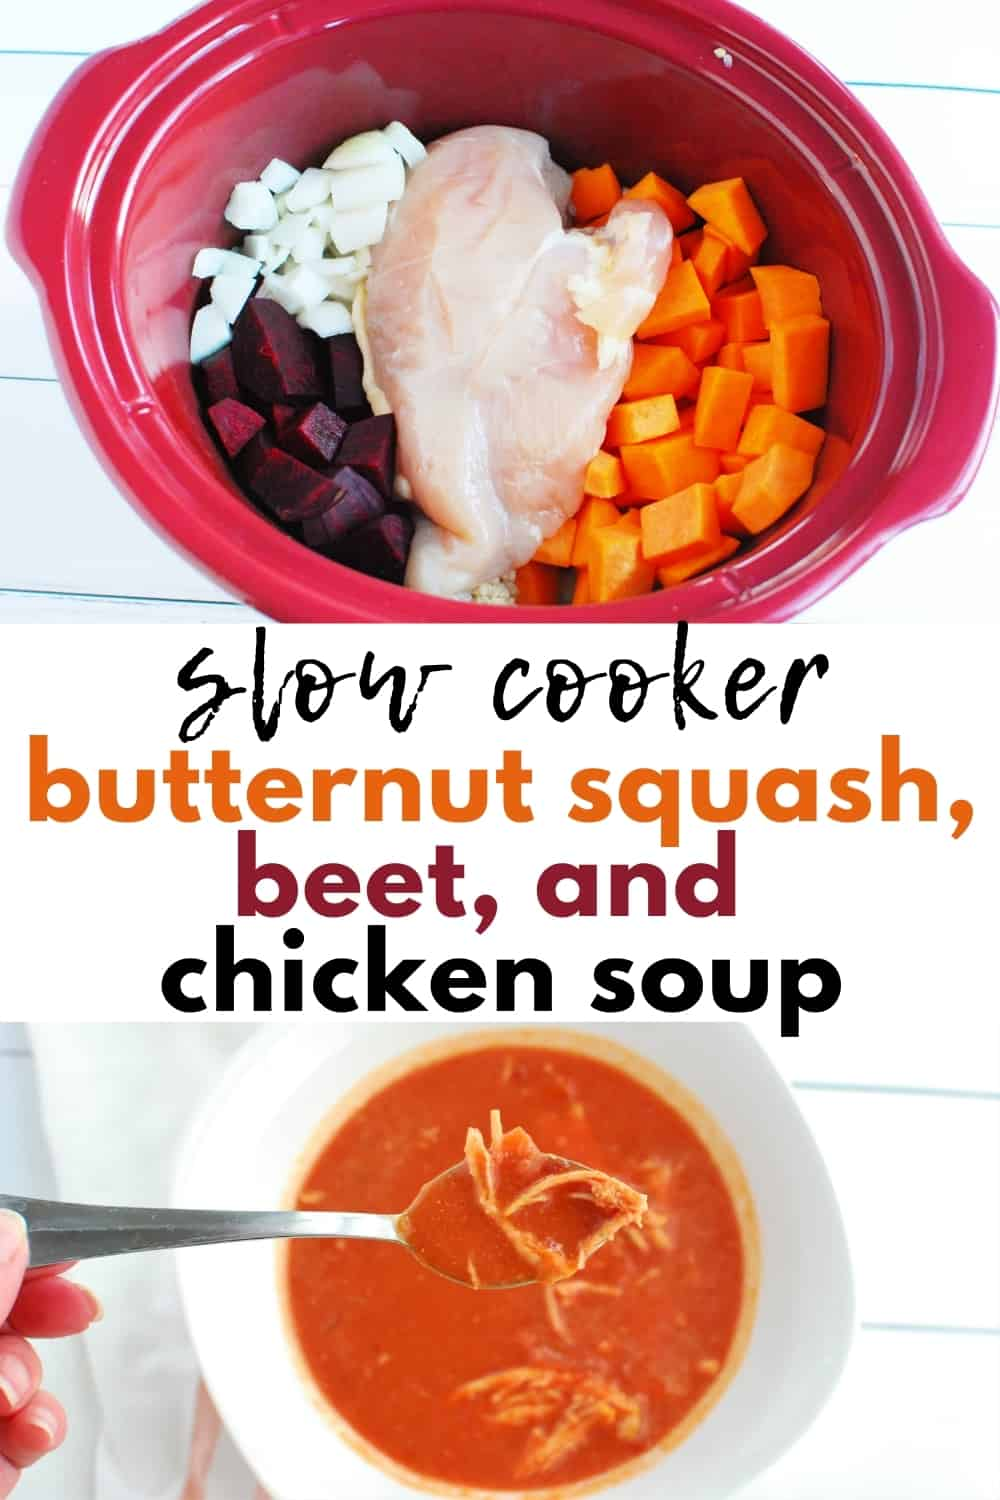 A collage image, the first image showing ingredients in the crockpot, and the second showing the finished butternut squash and beet soup.